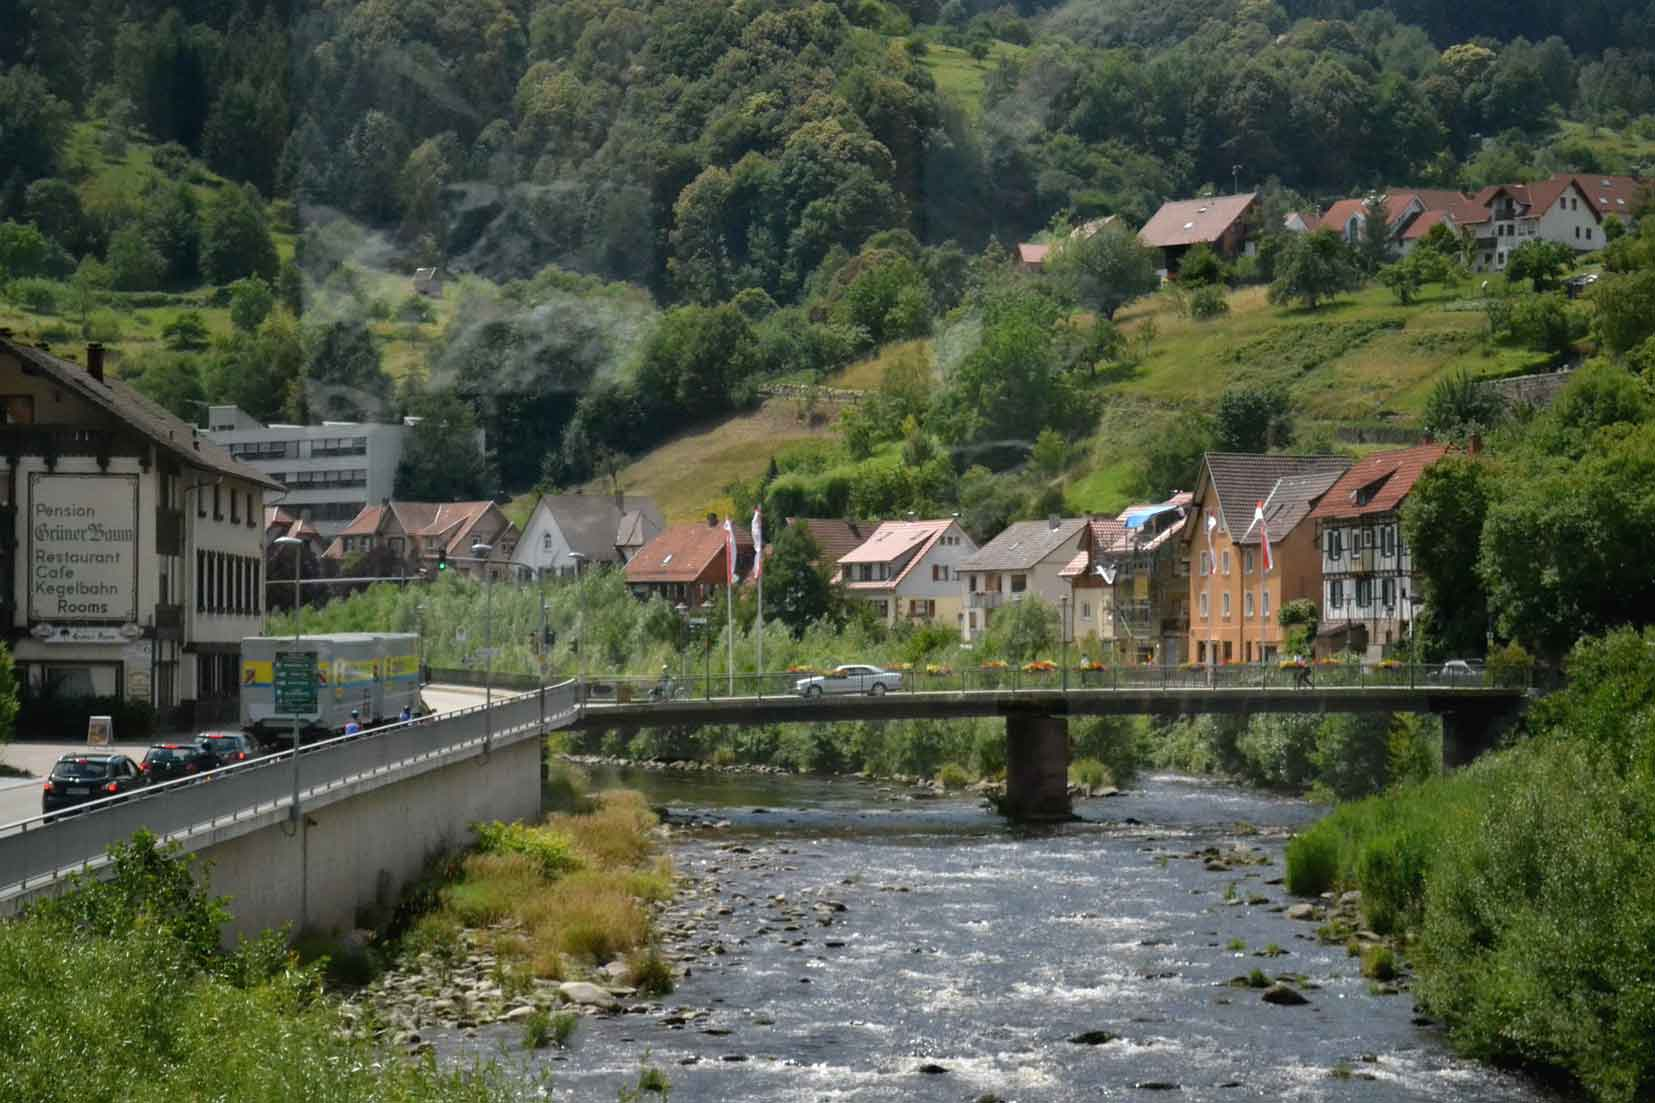 A small village in Black Forest, Germany by train. Image©gunjanvirk